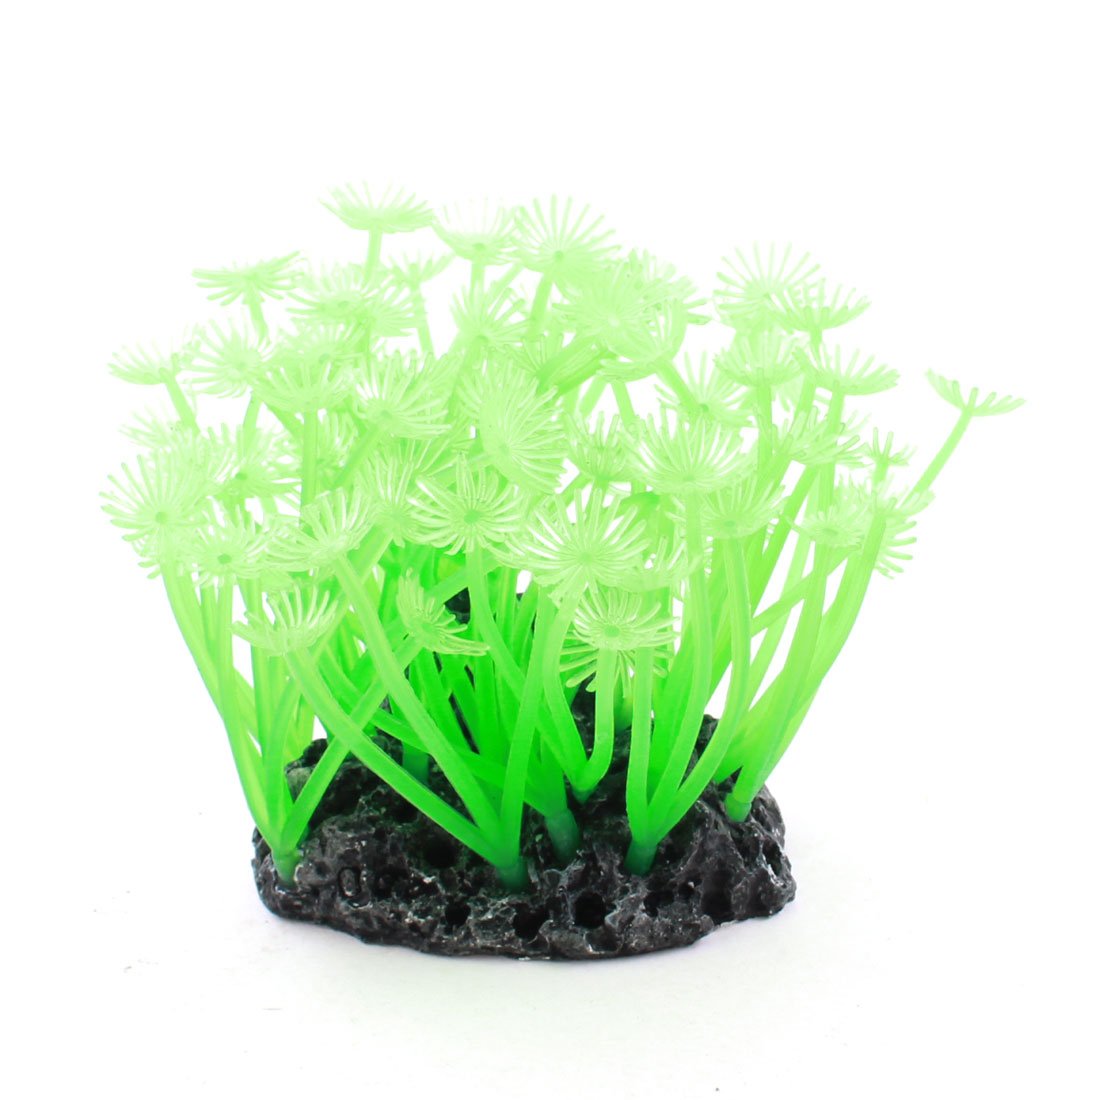 Fish Tank Black Rockery Base Green Silicone Artificial Water Coral Plant 10cm High